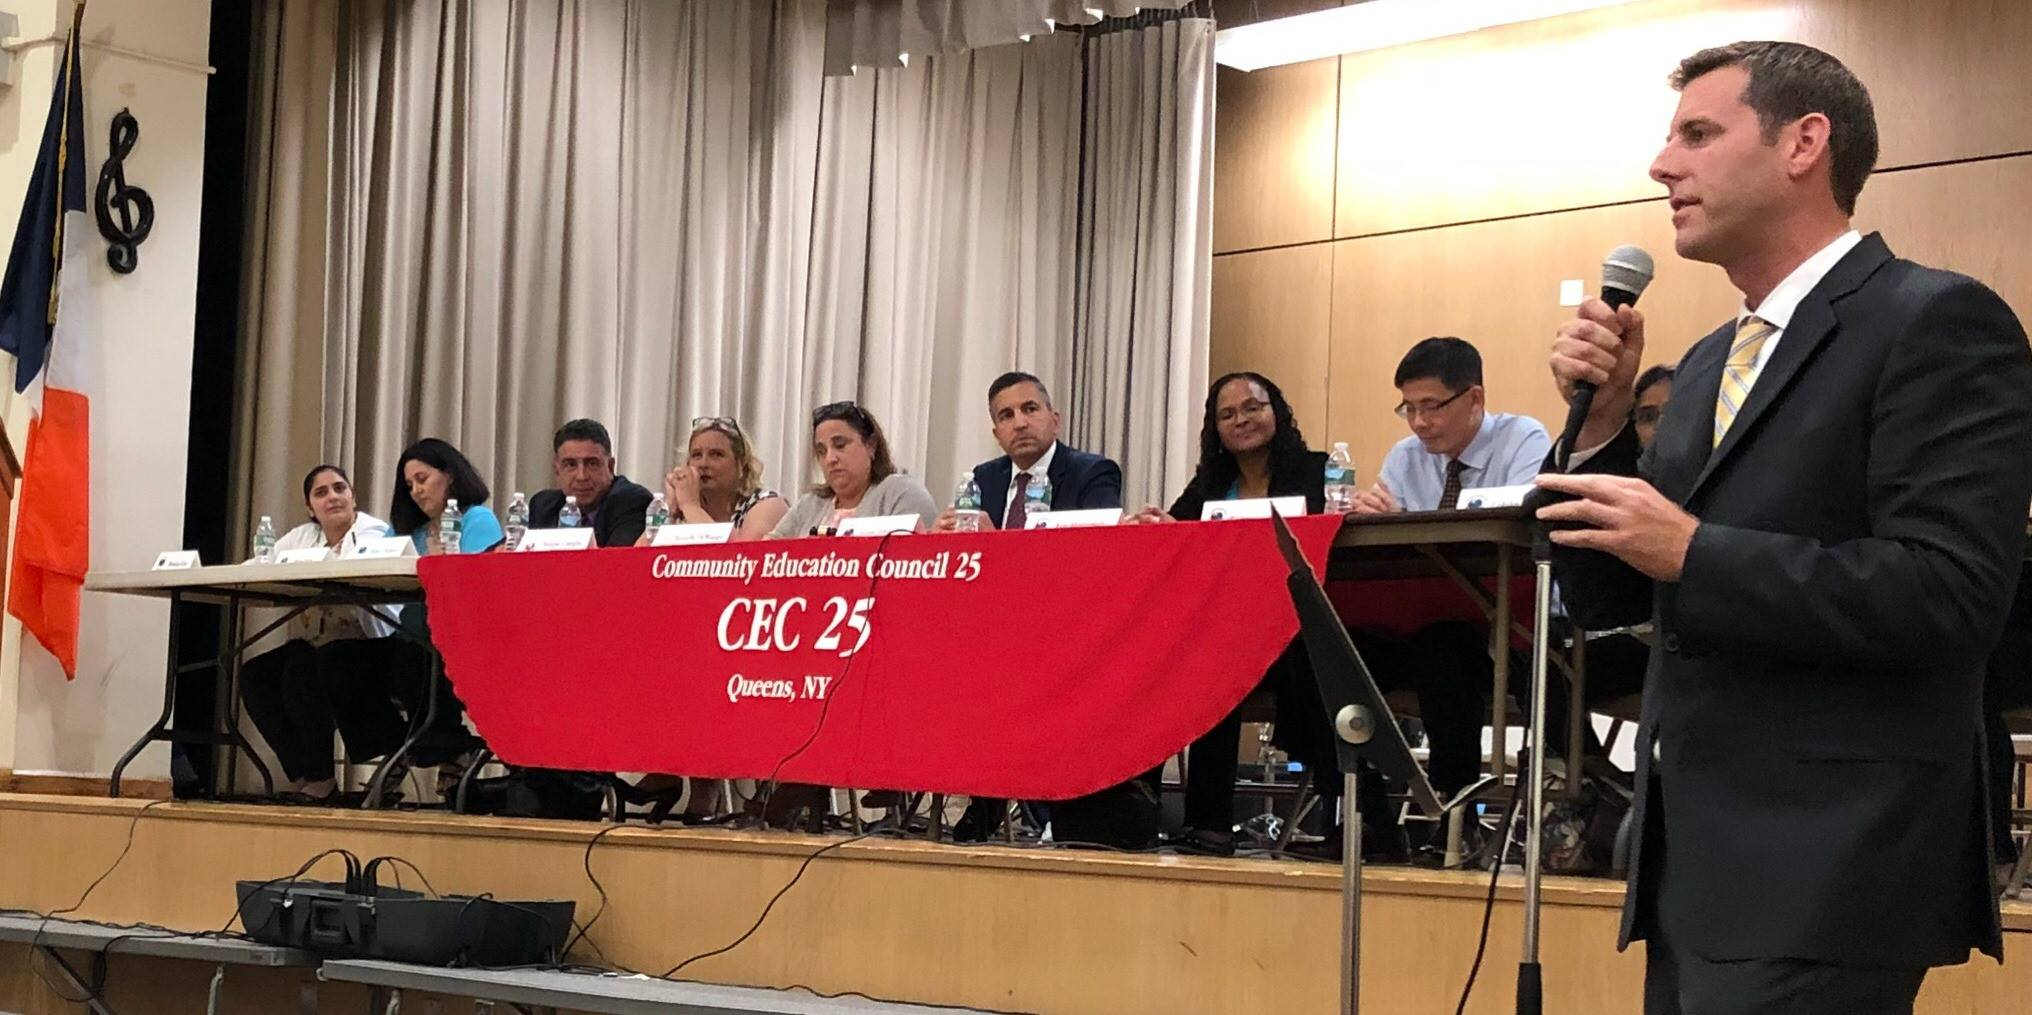 On October 3, 2018, Assemblyman Braunstein attended the School District 25 Community Education Council meeting and spoke against the Mayor's proposed elimination of the Specialized High School Ad